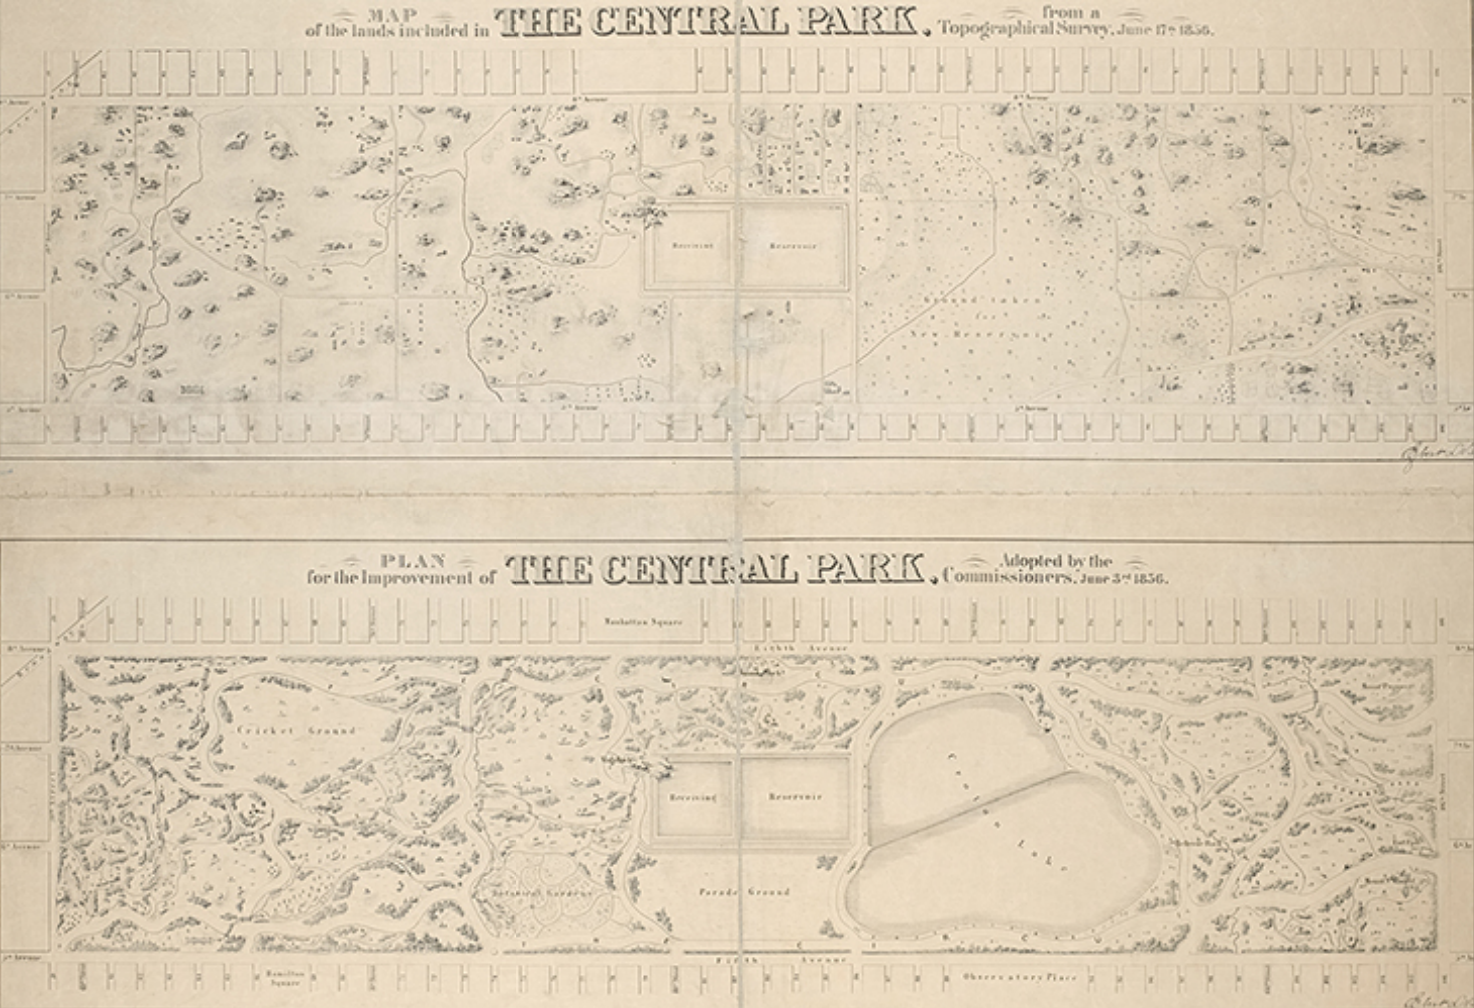 1856-map-of-the-lands-included-in-the-central-park-topographical-survey-june-17th-1856-plan-for-the-improvement-of-the-central-park-adopted-by-the-commissioners-june-3rd-1856-1856-nypl